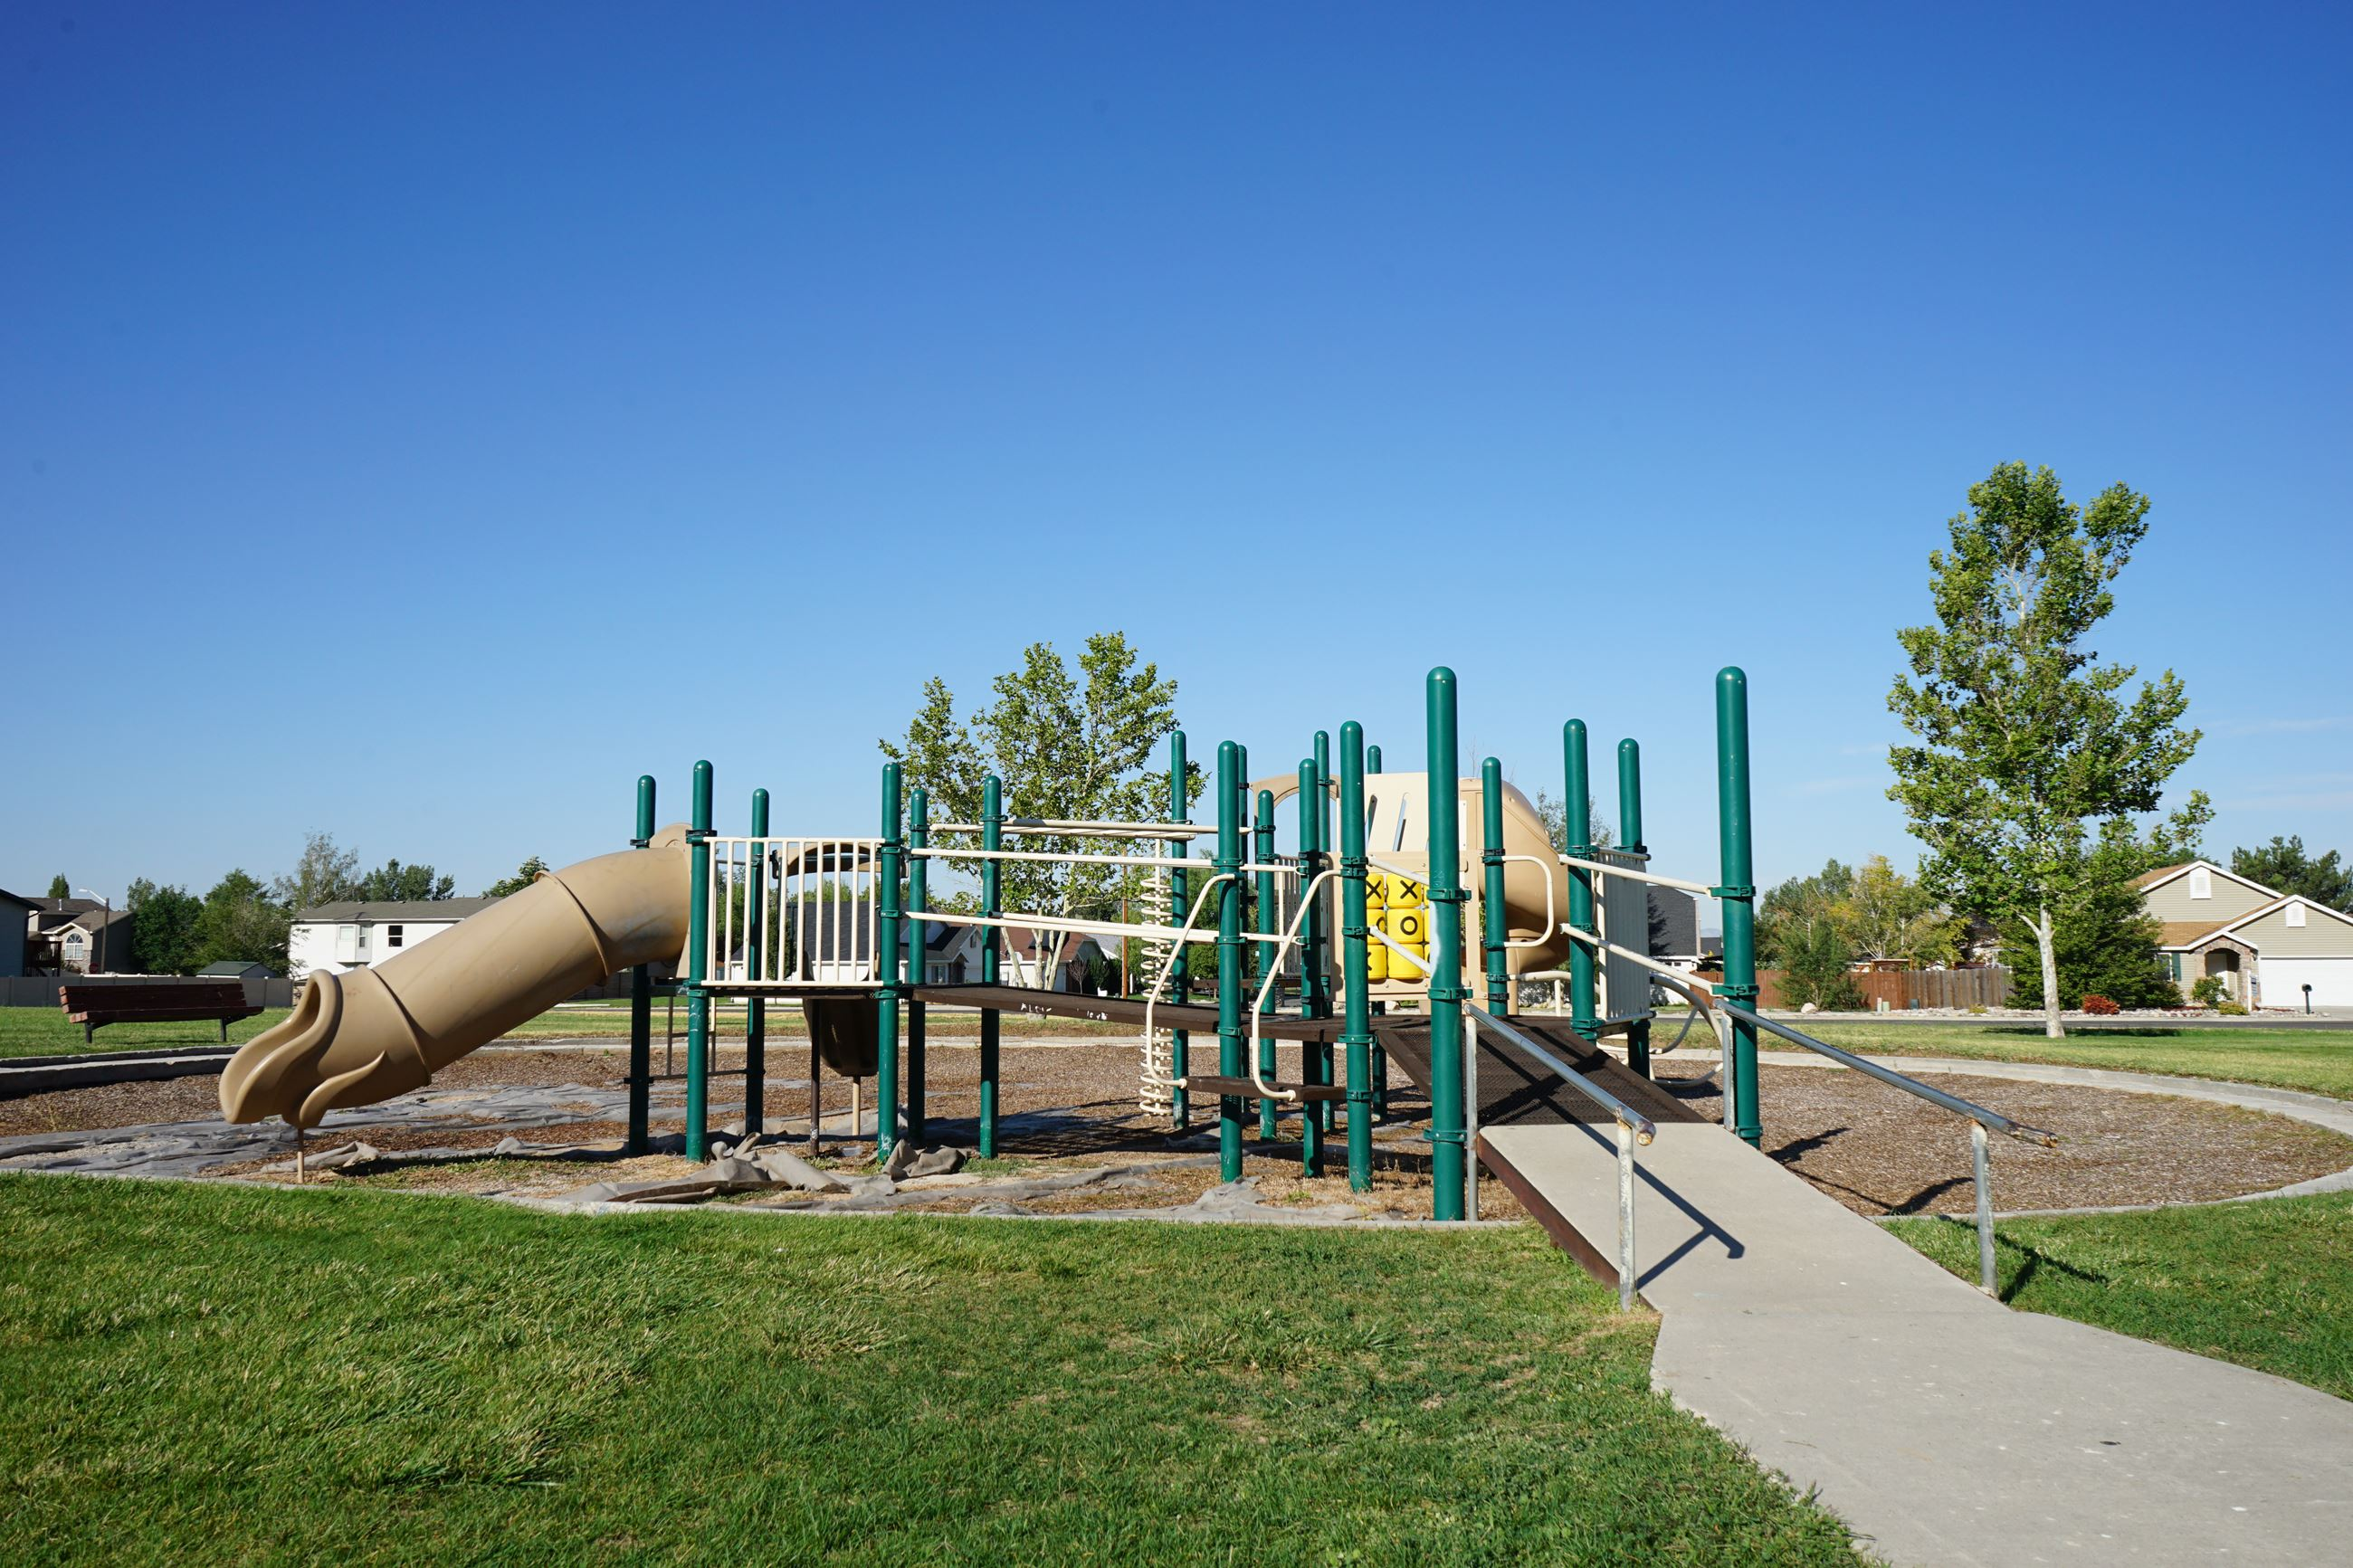 The playground at Francis Peak Park